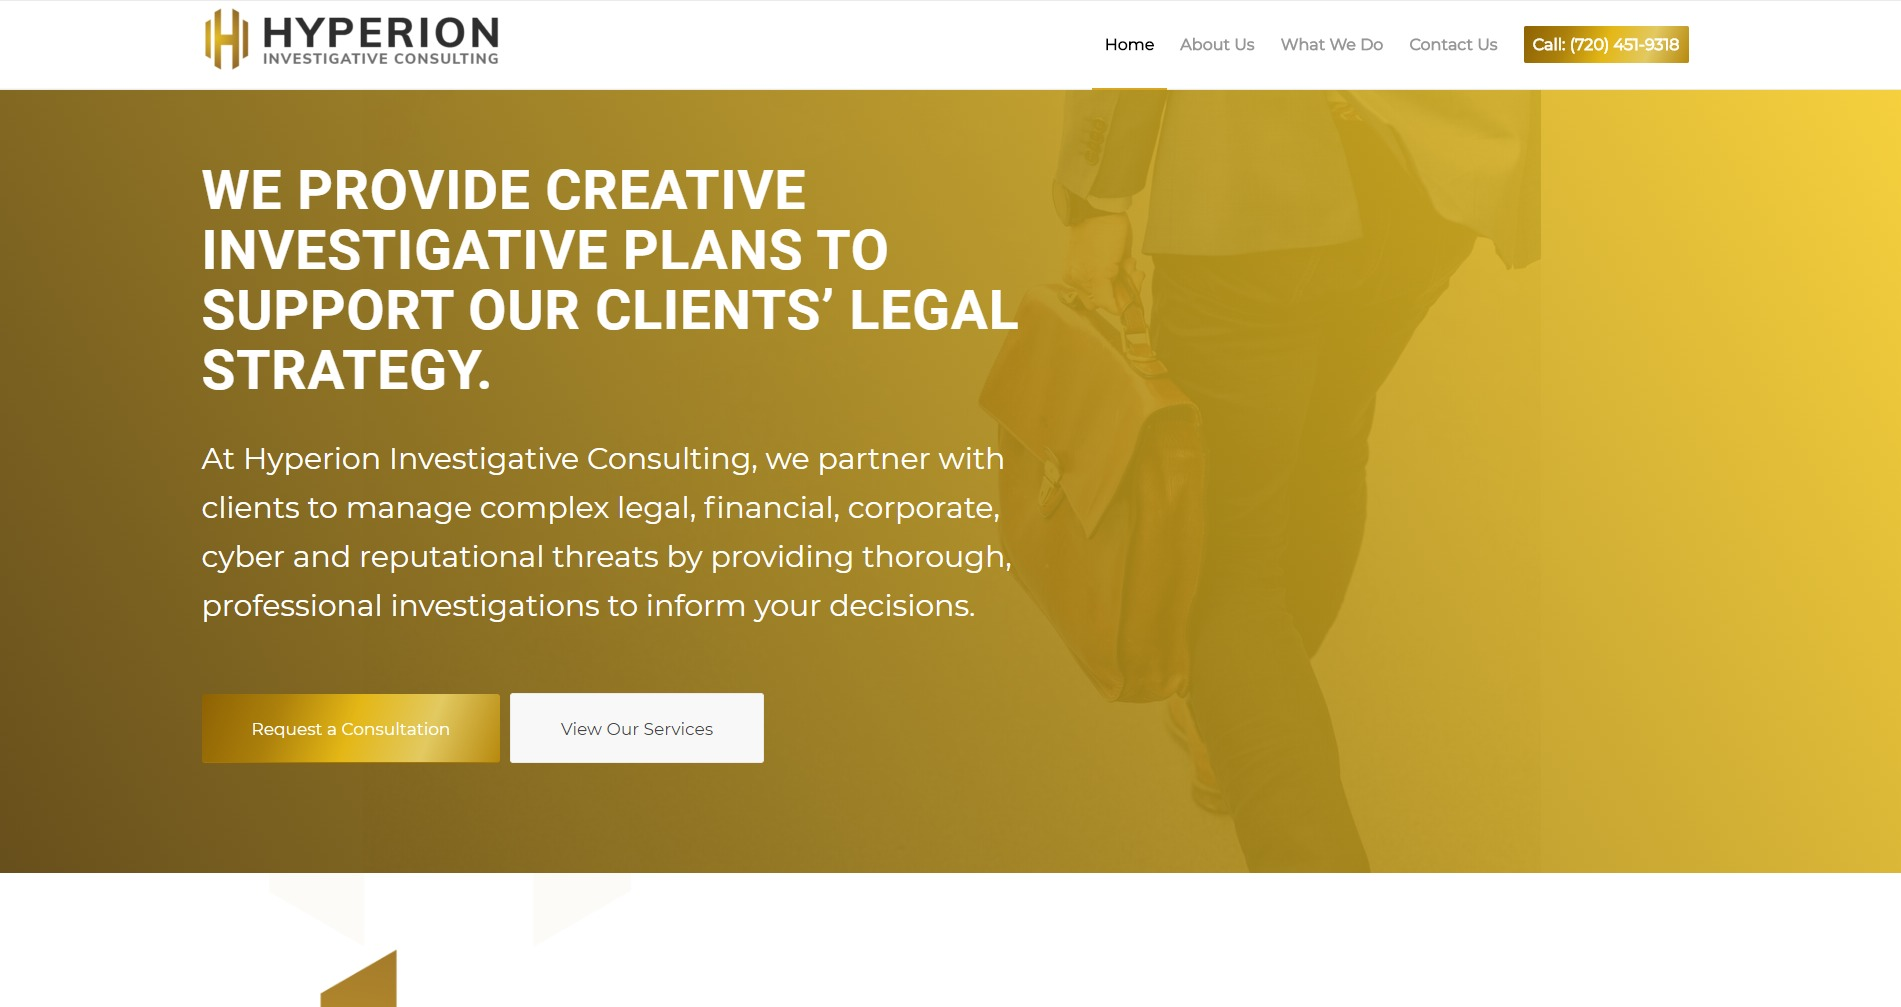 Hyperion Investigative Consulting Website Design by Investigator Marketing